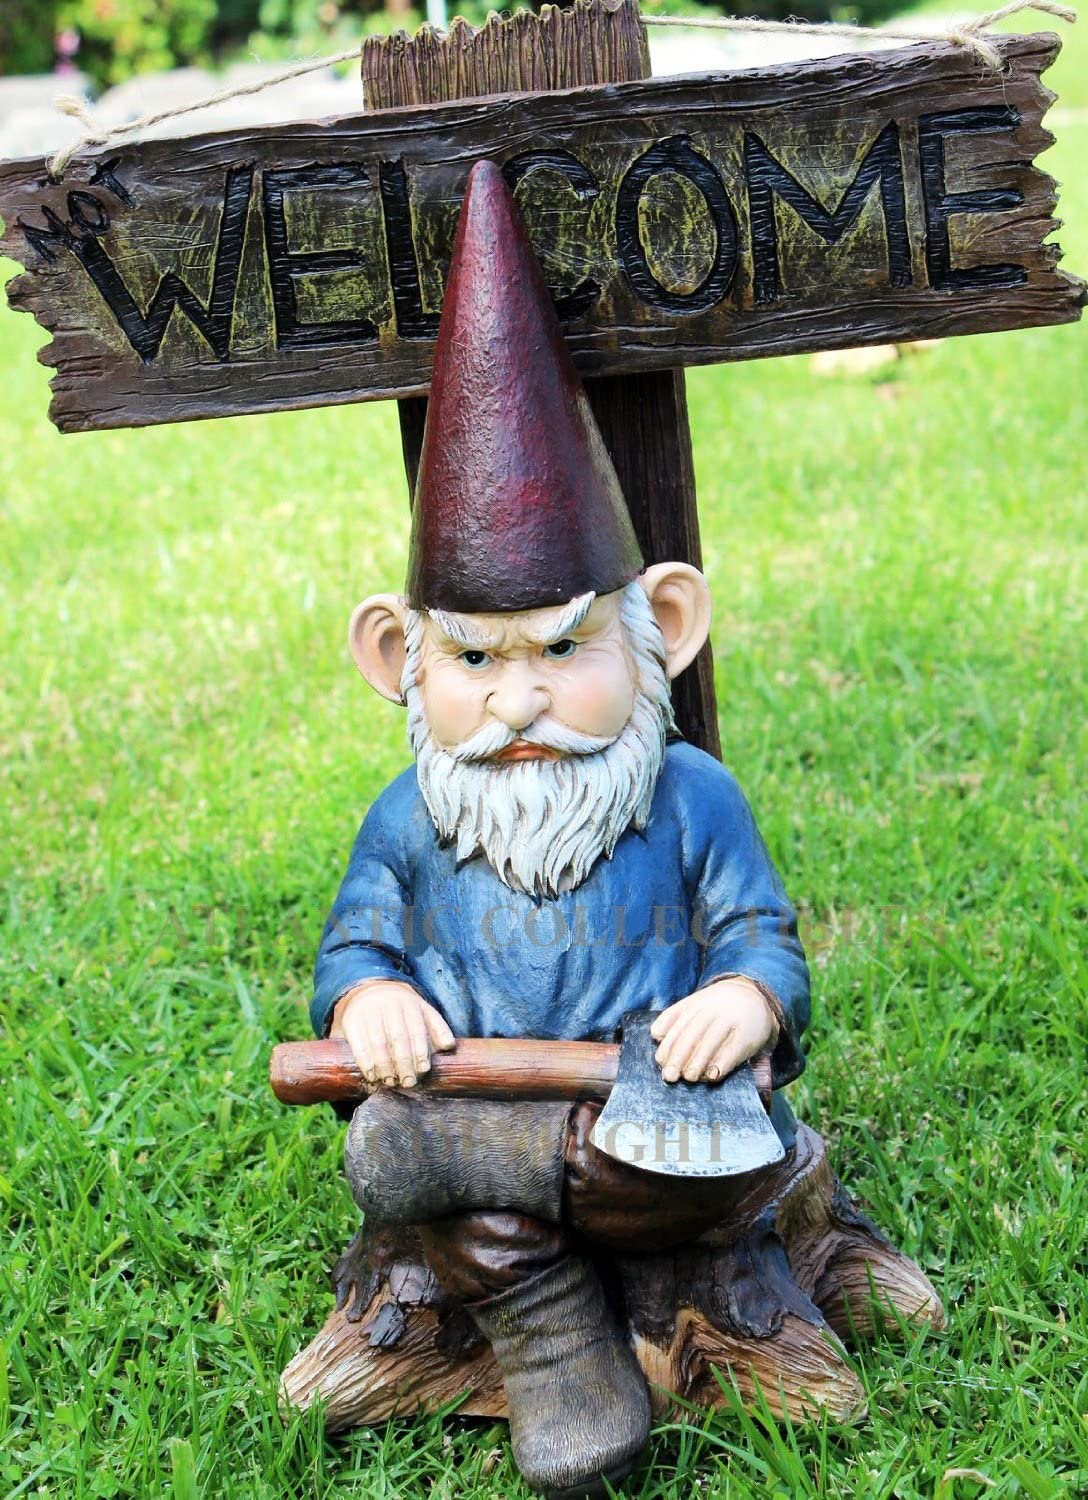 Atlantic Collectibles Cozy Whimsical Garden Grumpy Grinchy Gnome Dwarf Not Welcome Statue Patio Outdoor Poolside Figurine As Magical Guest Greeter Decorative